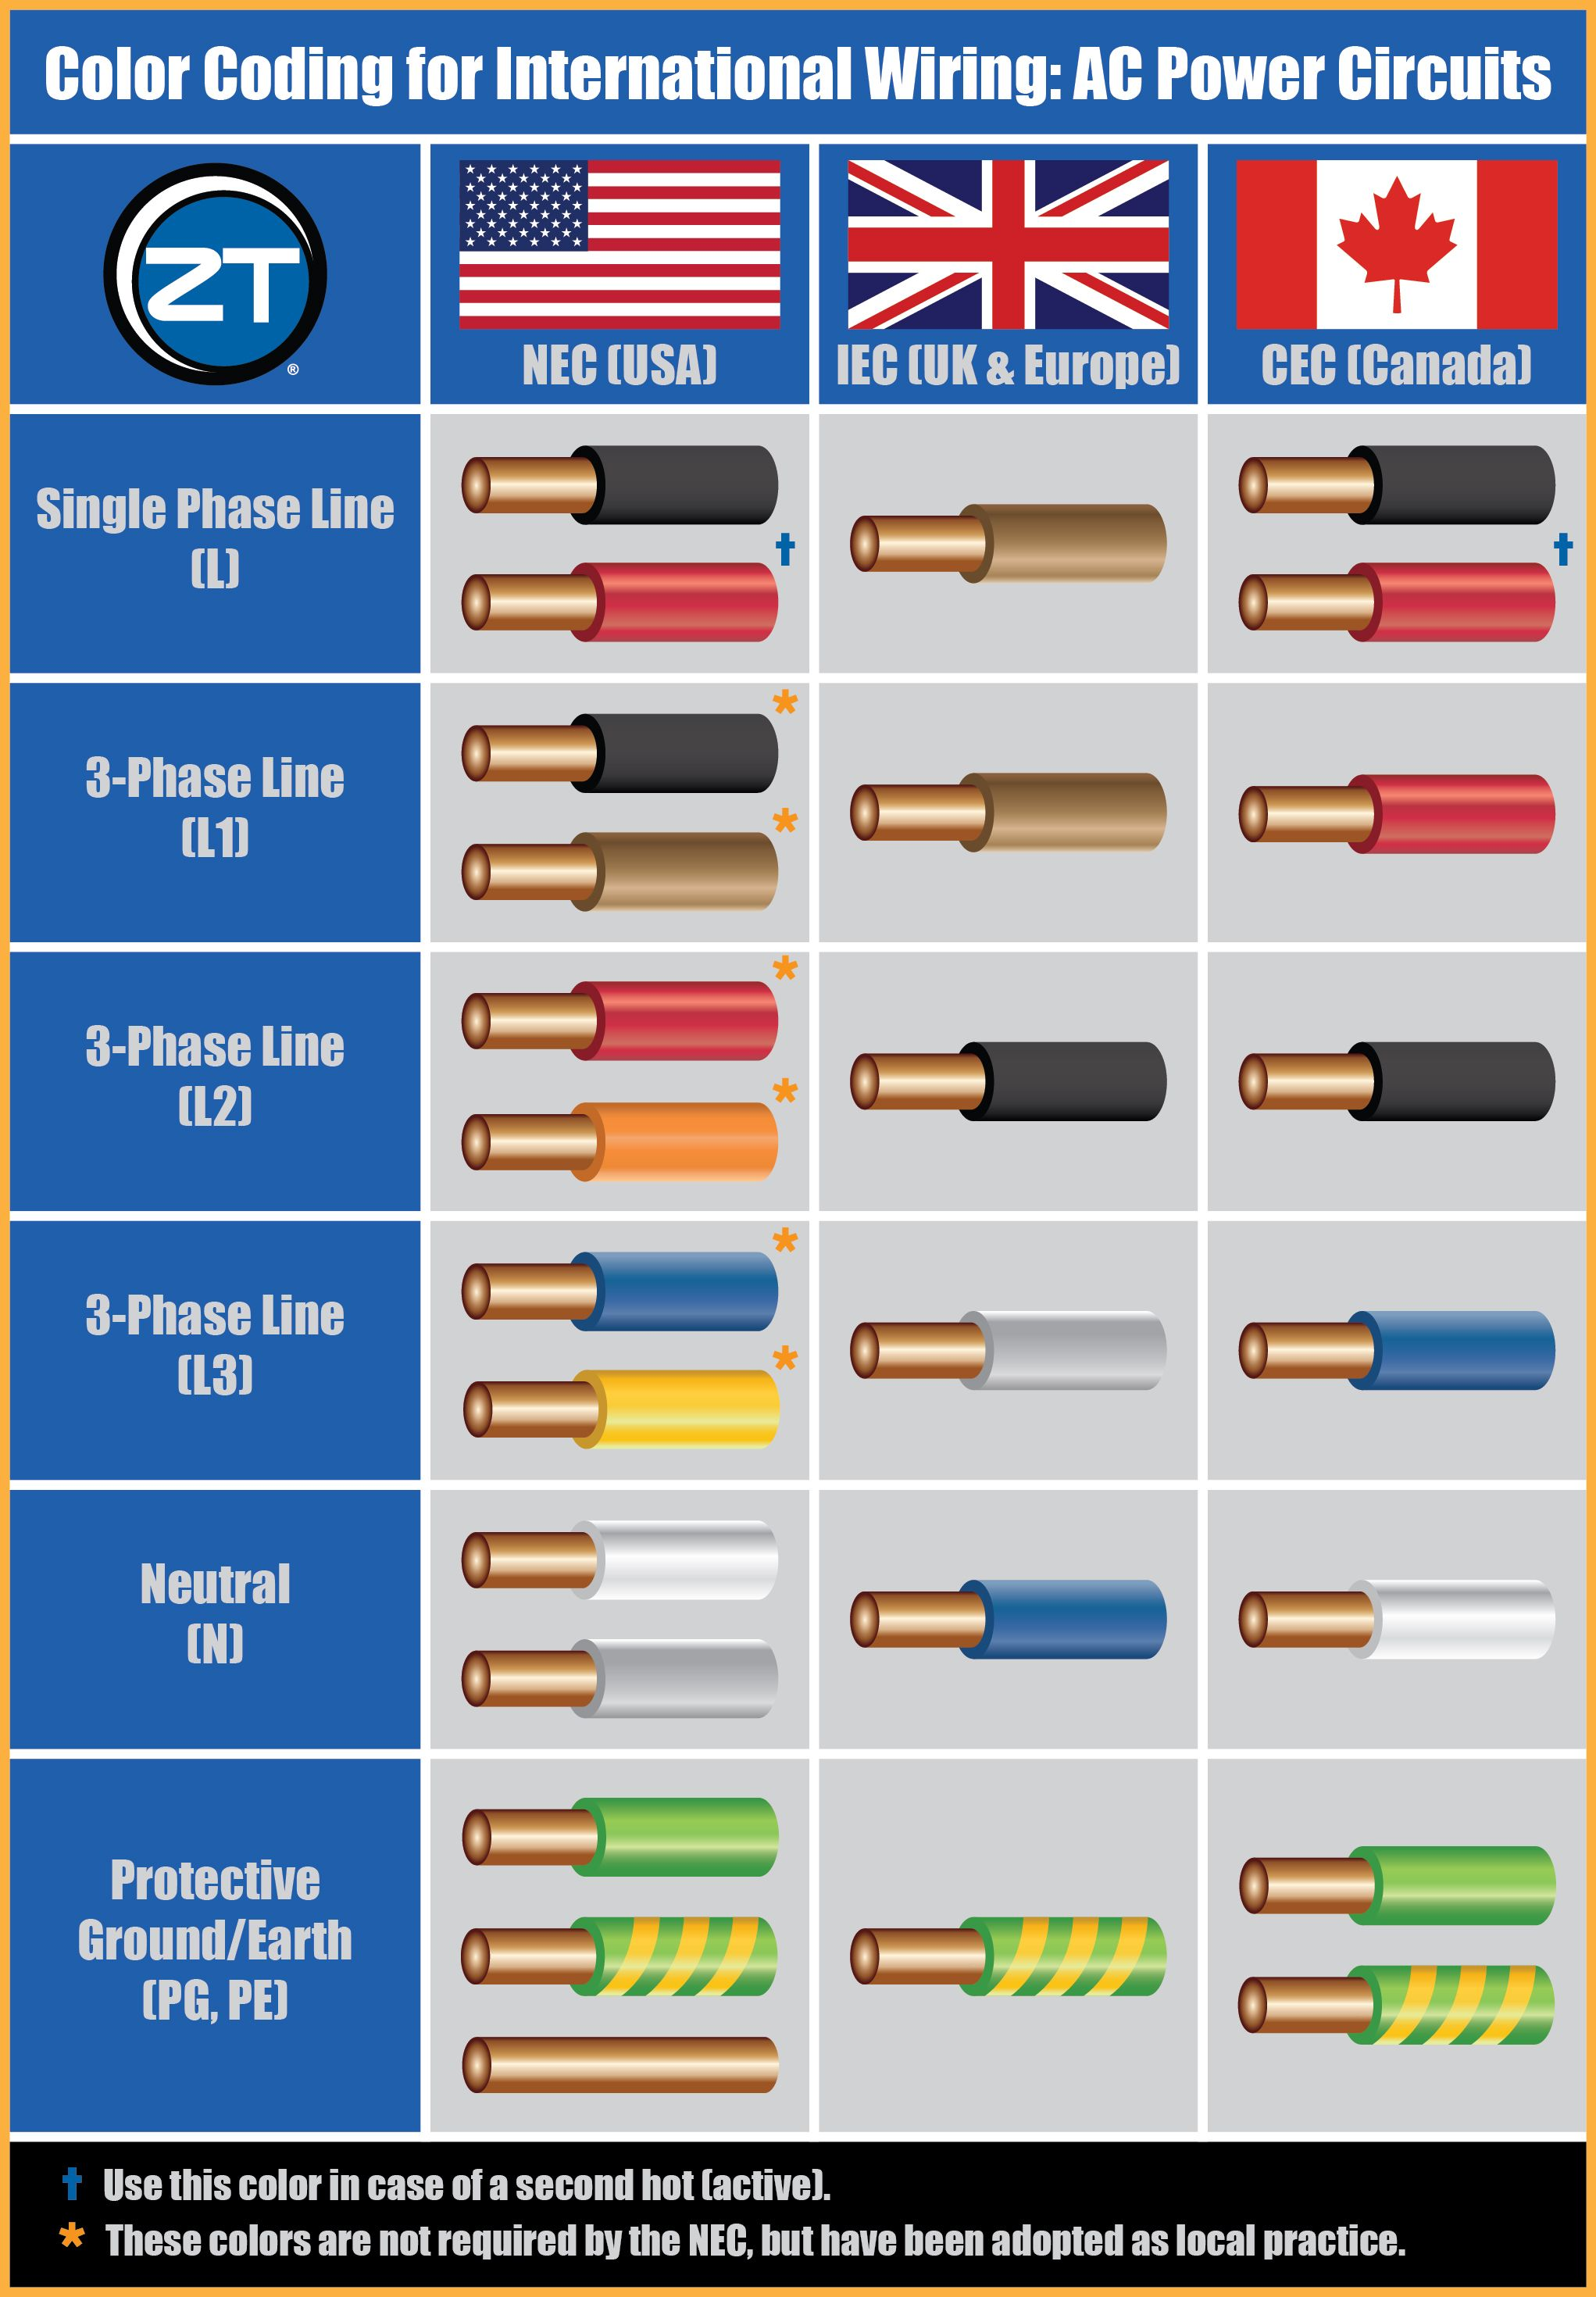 guide to color coding for international wiring international rh pinterest com International Electrical Wiring Color Codes old electrical wiring colors usa